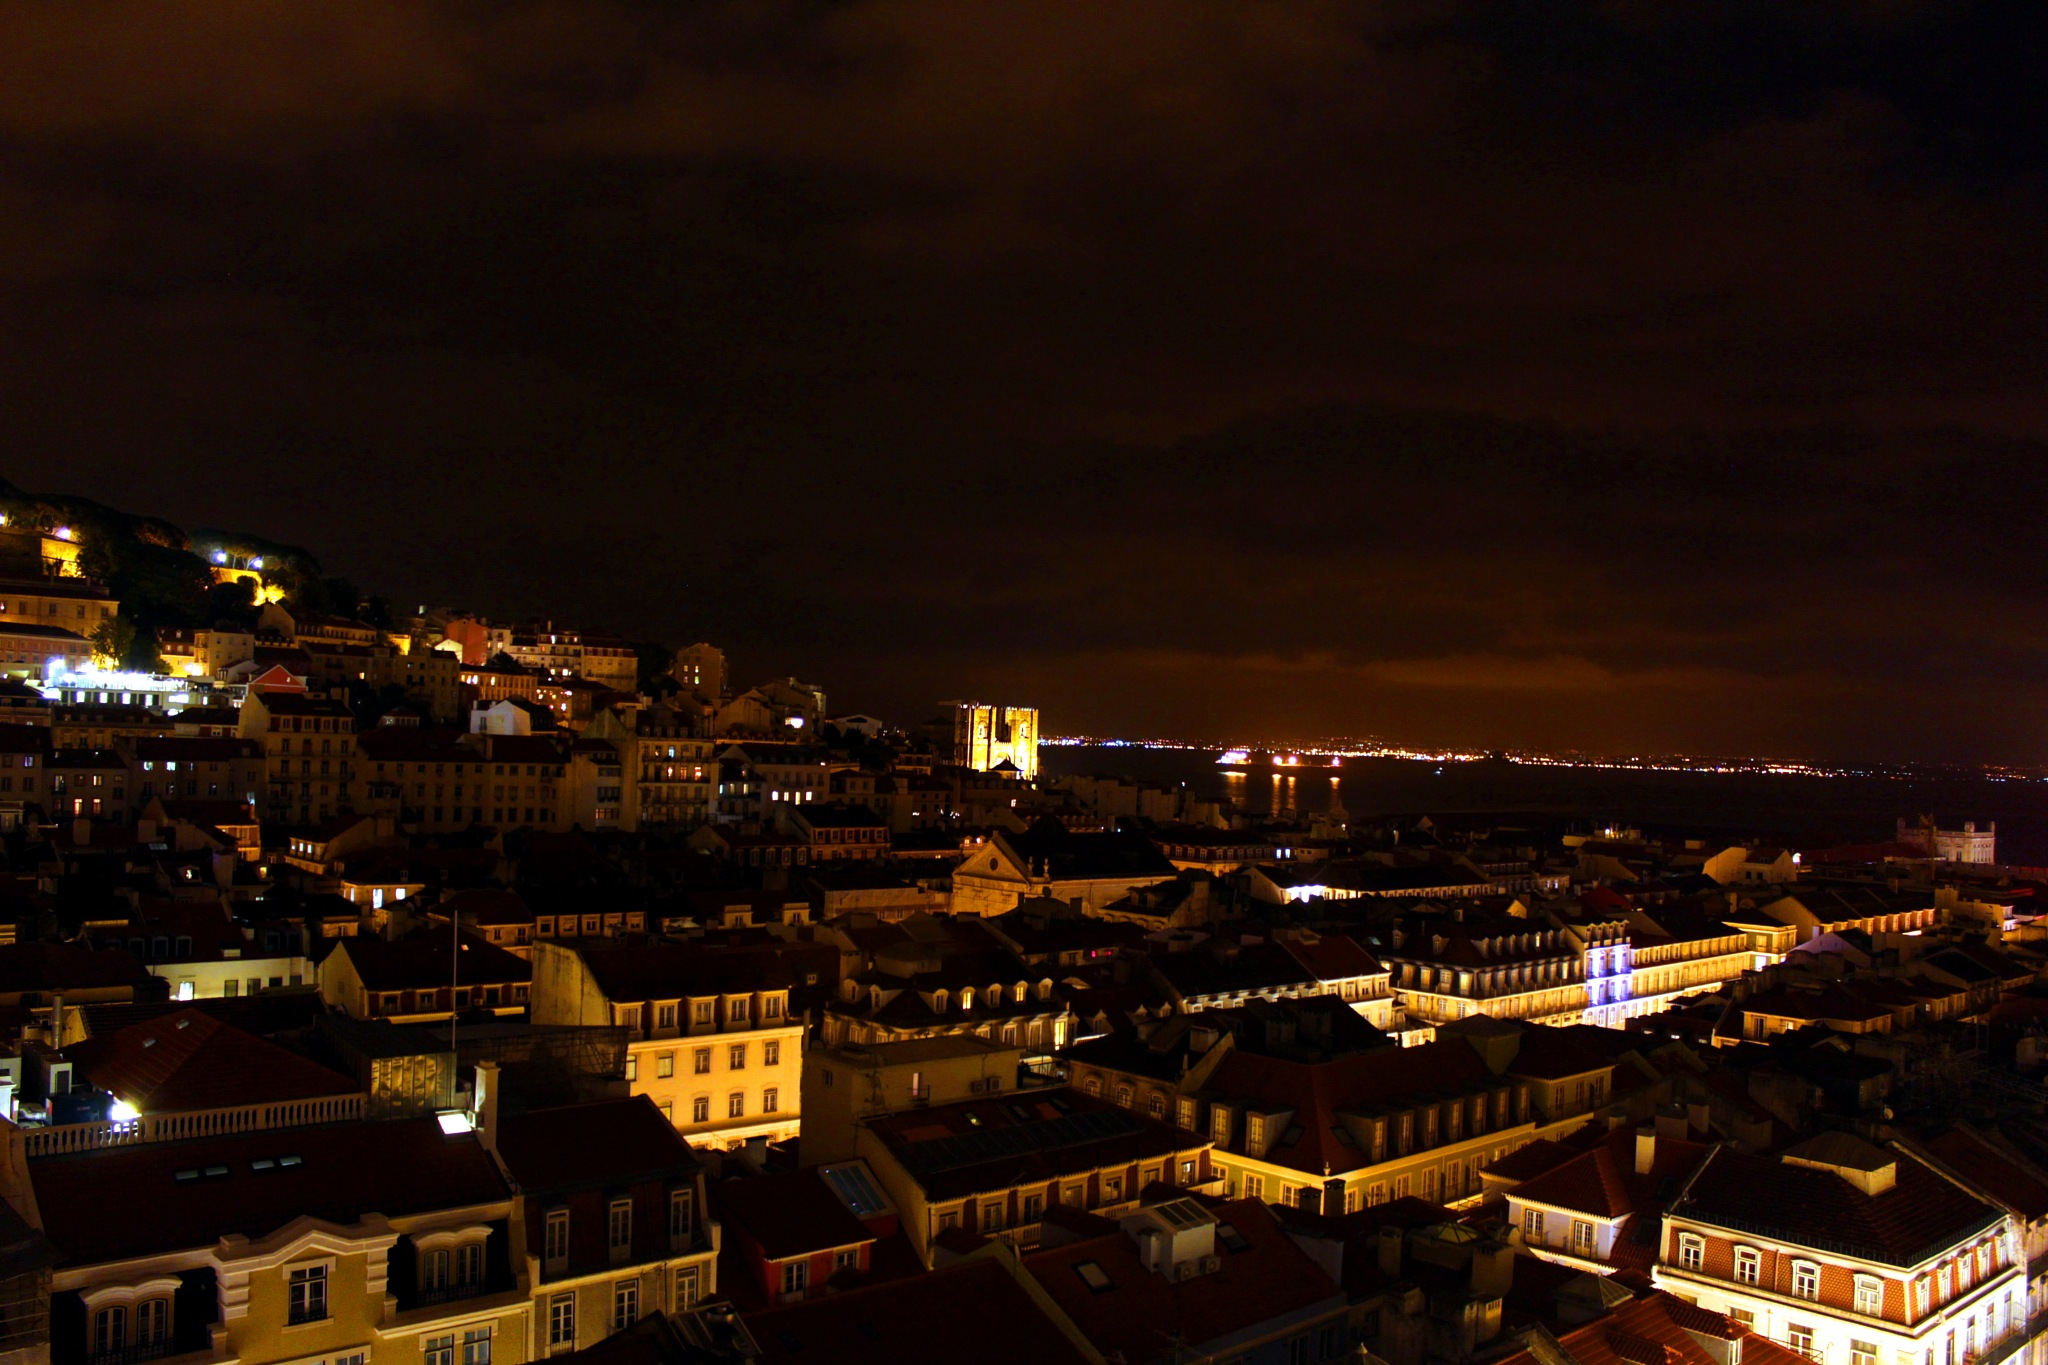 Night view of Lisbon by Cristiano Maioli